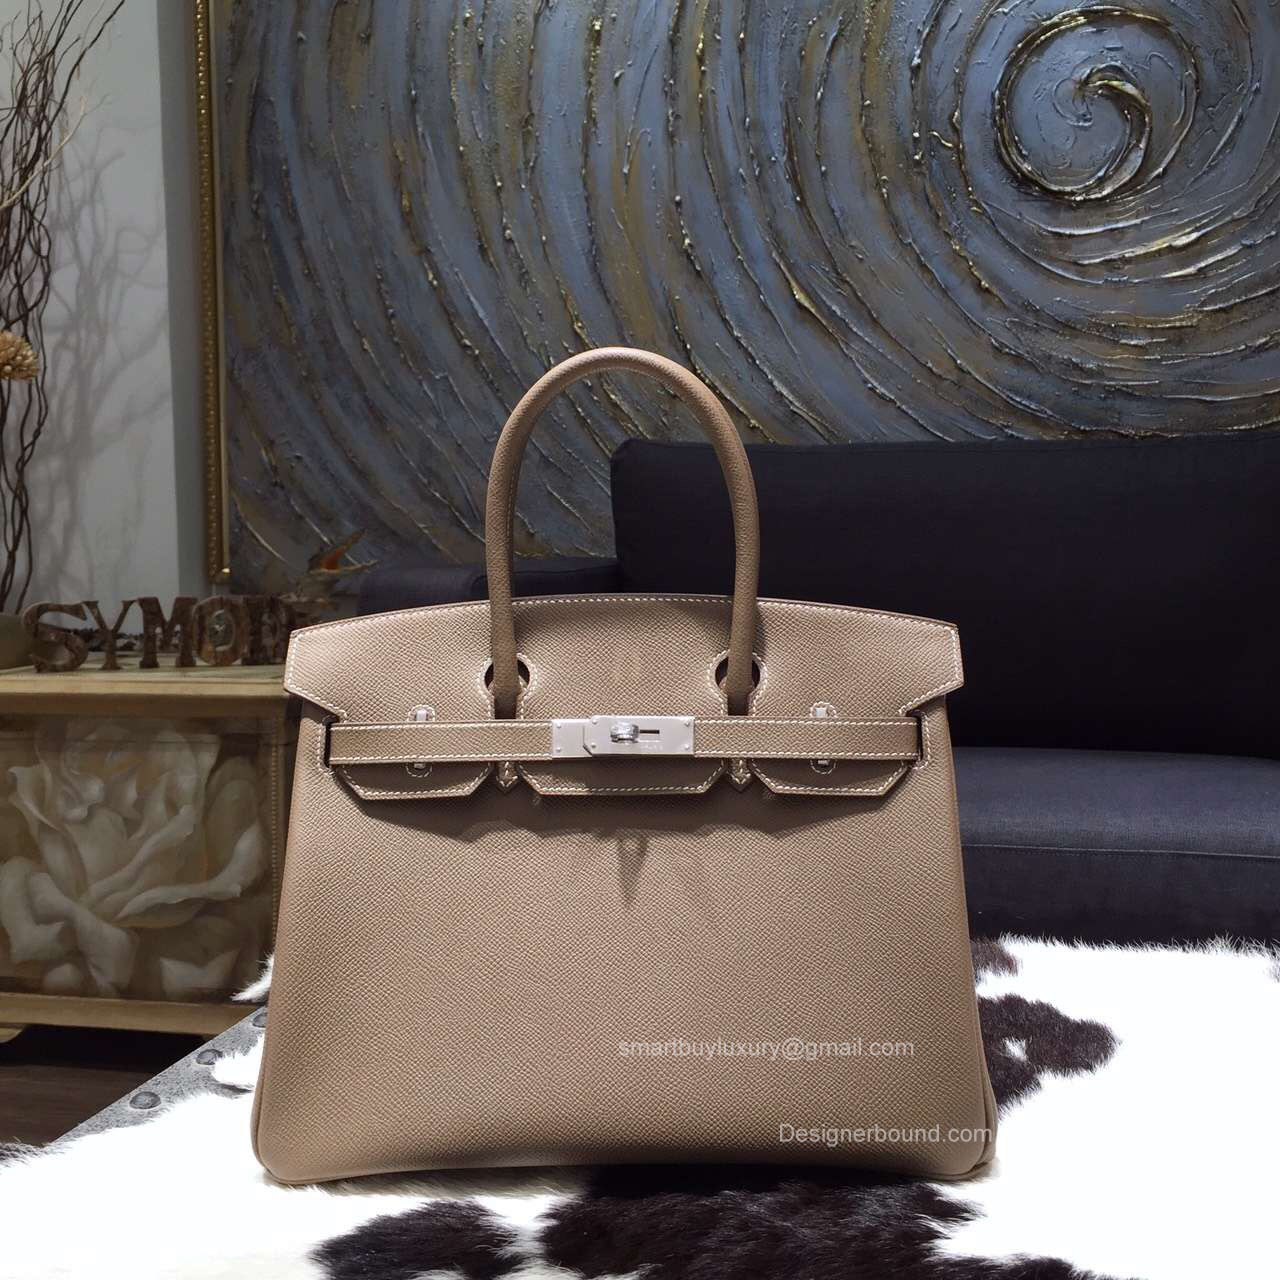 Hermes Birkin 35 Bag Etoupe Epsom Leather Handstitched Silver hw